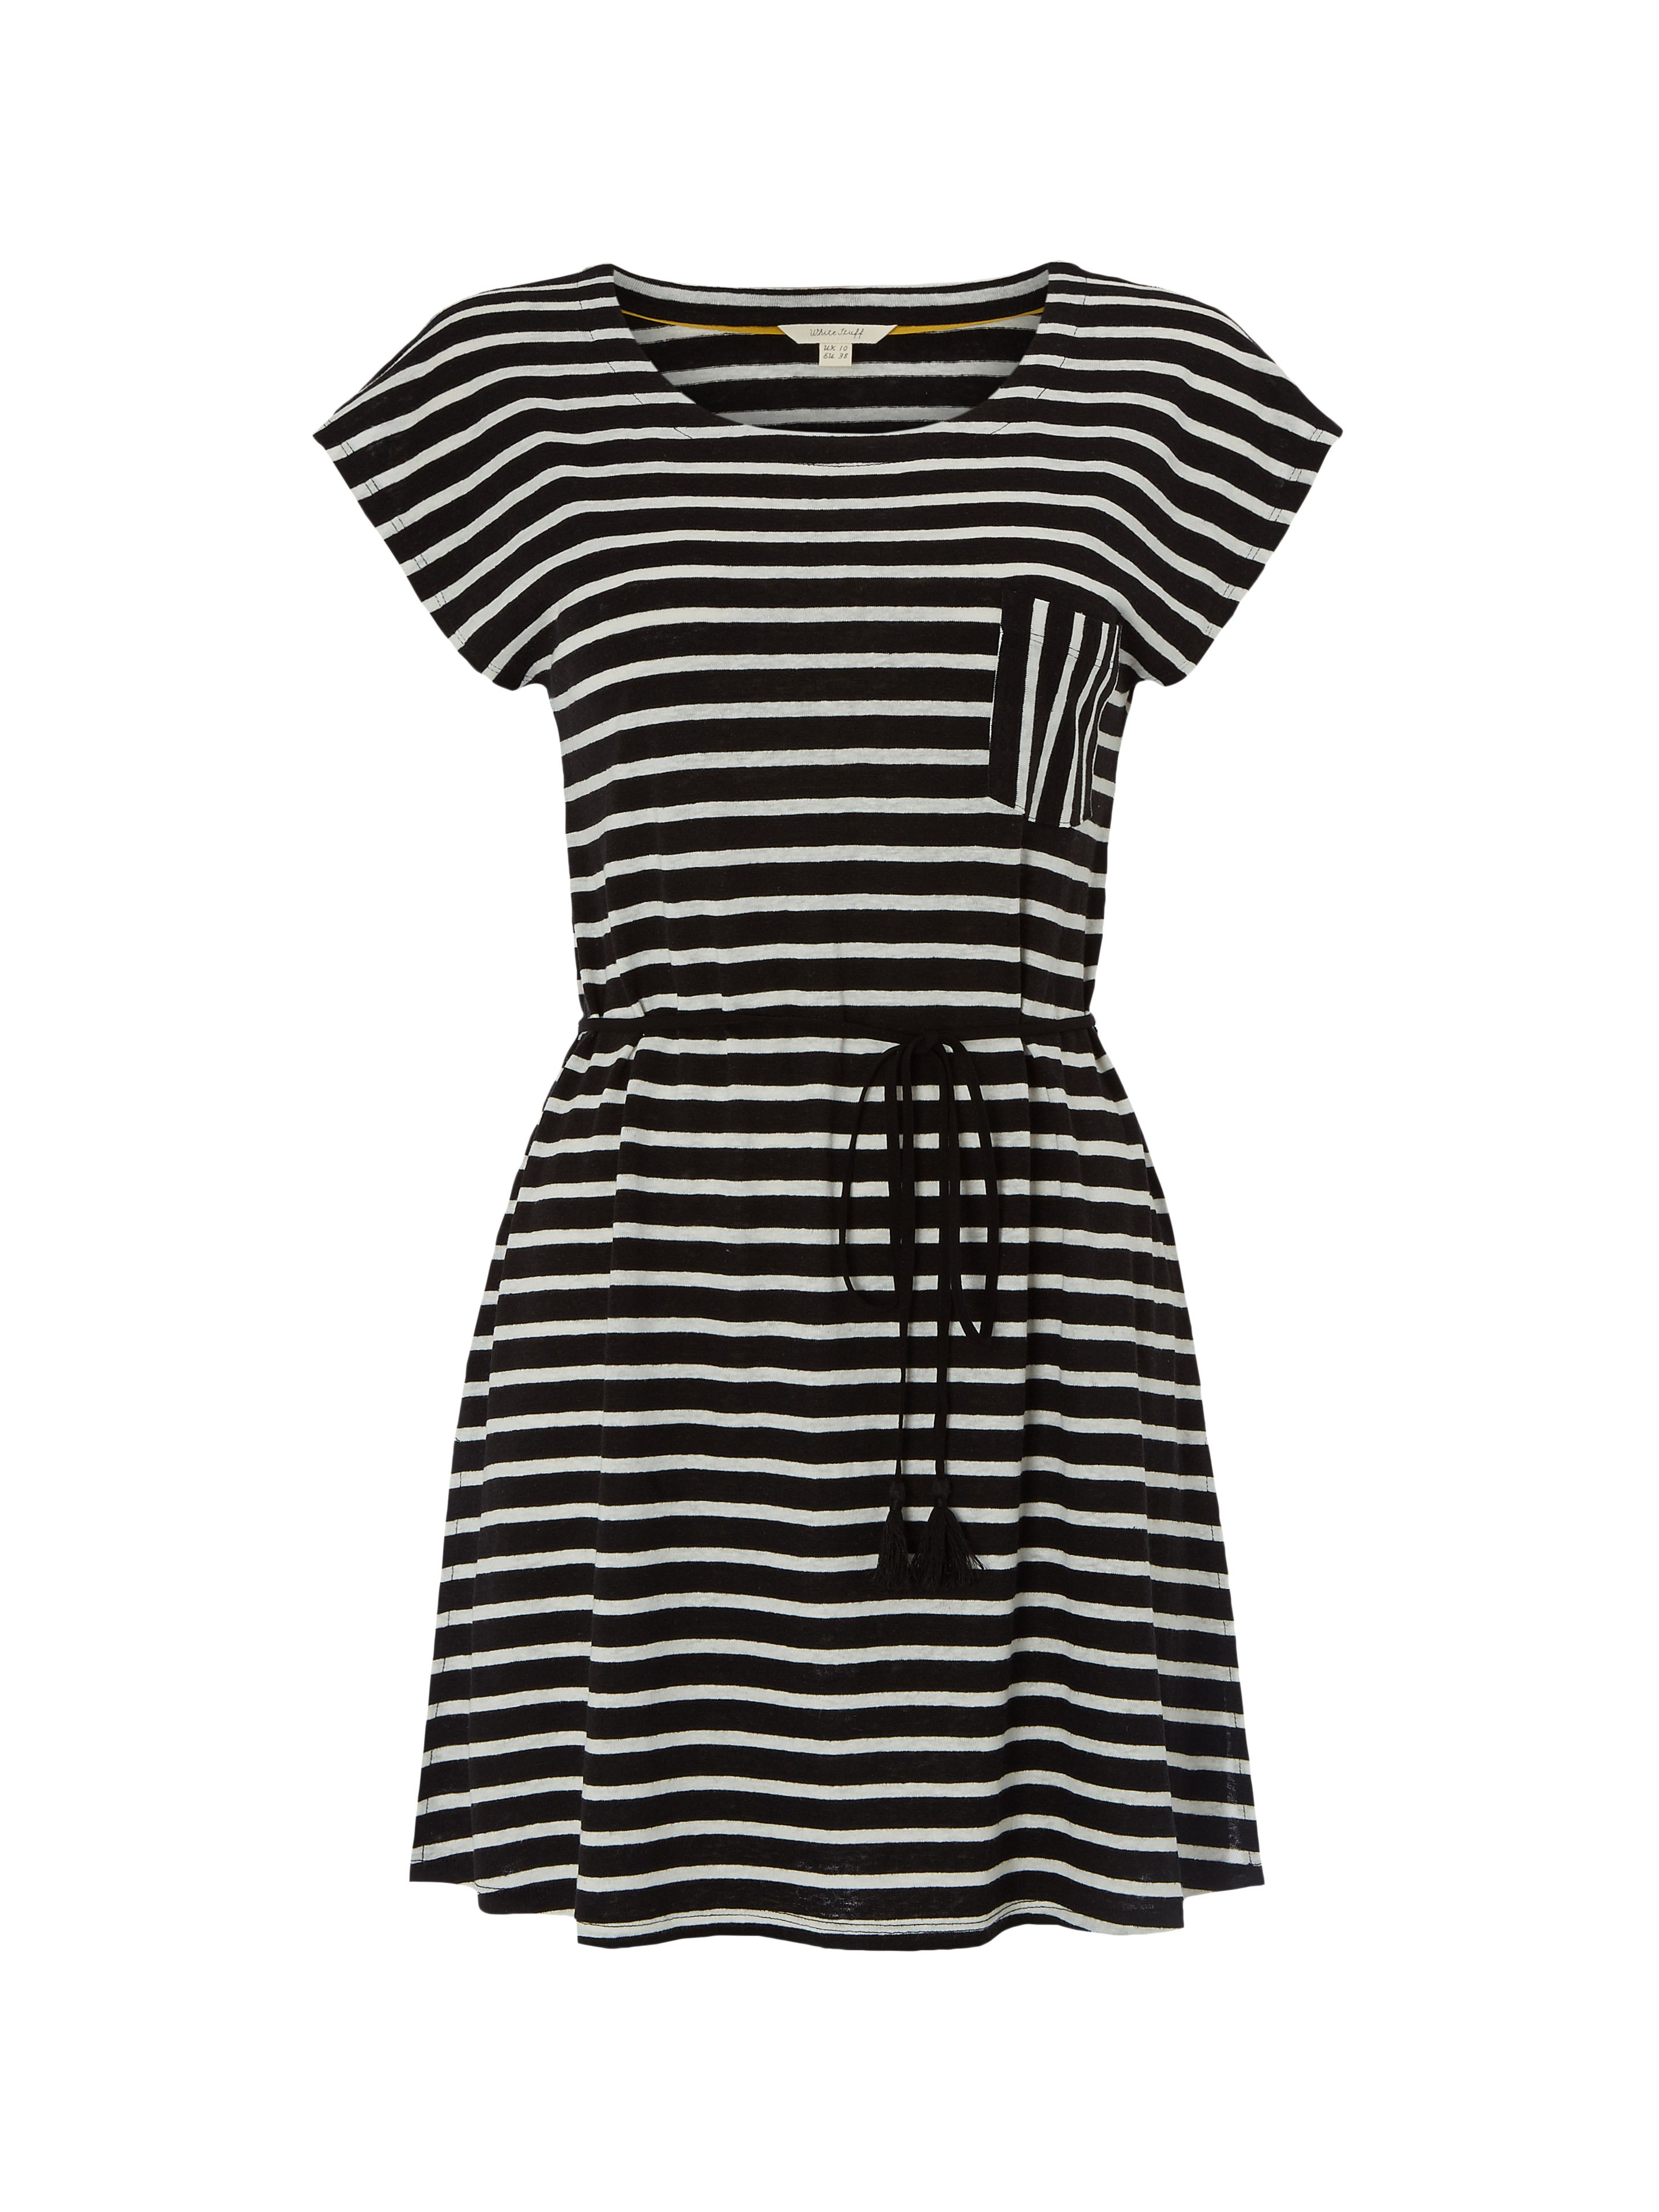 White Stuff Monochrome Stripe Jersey Tunic, Black